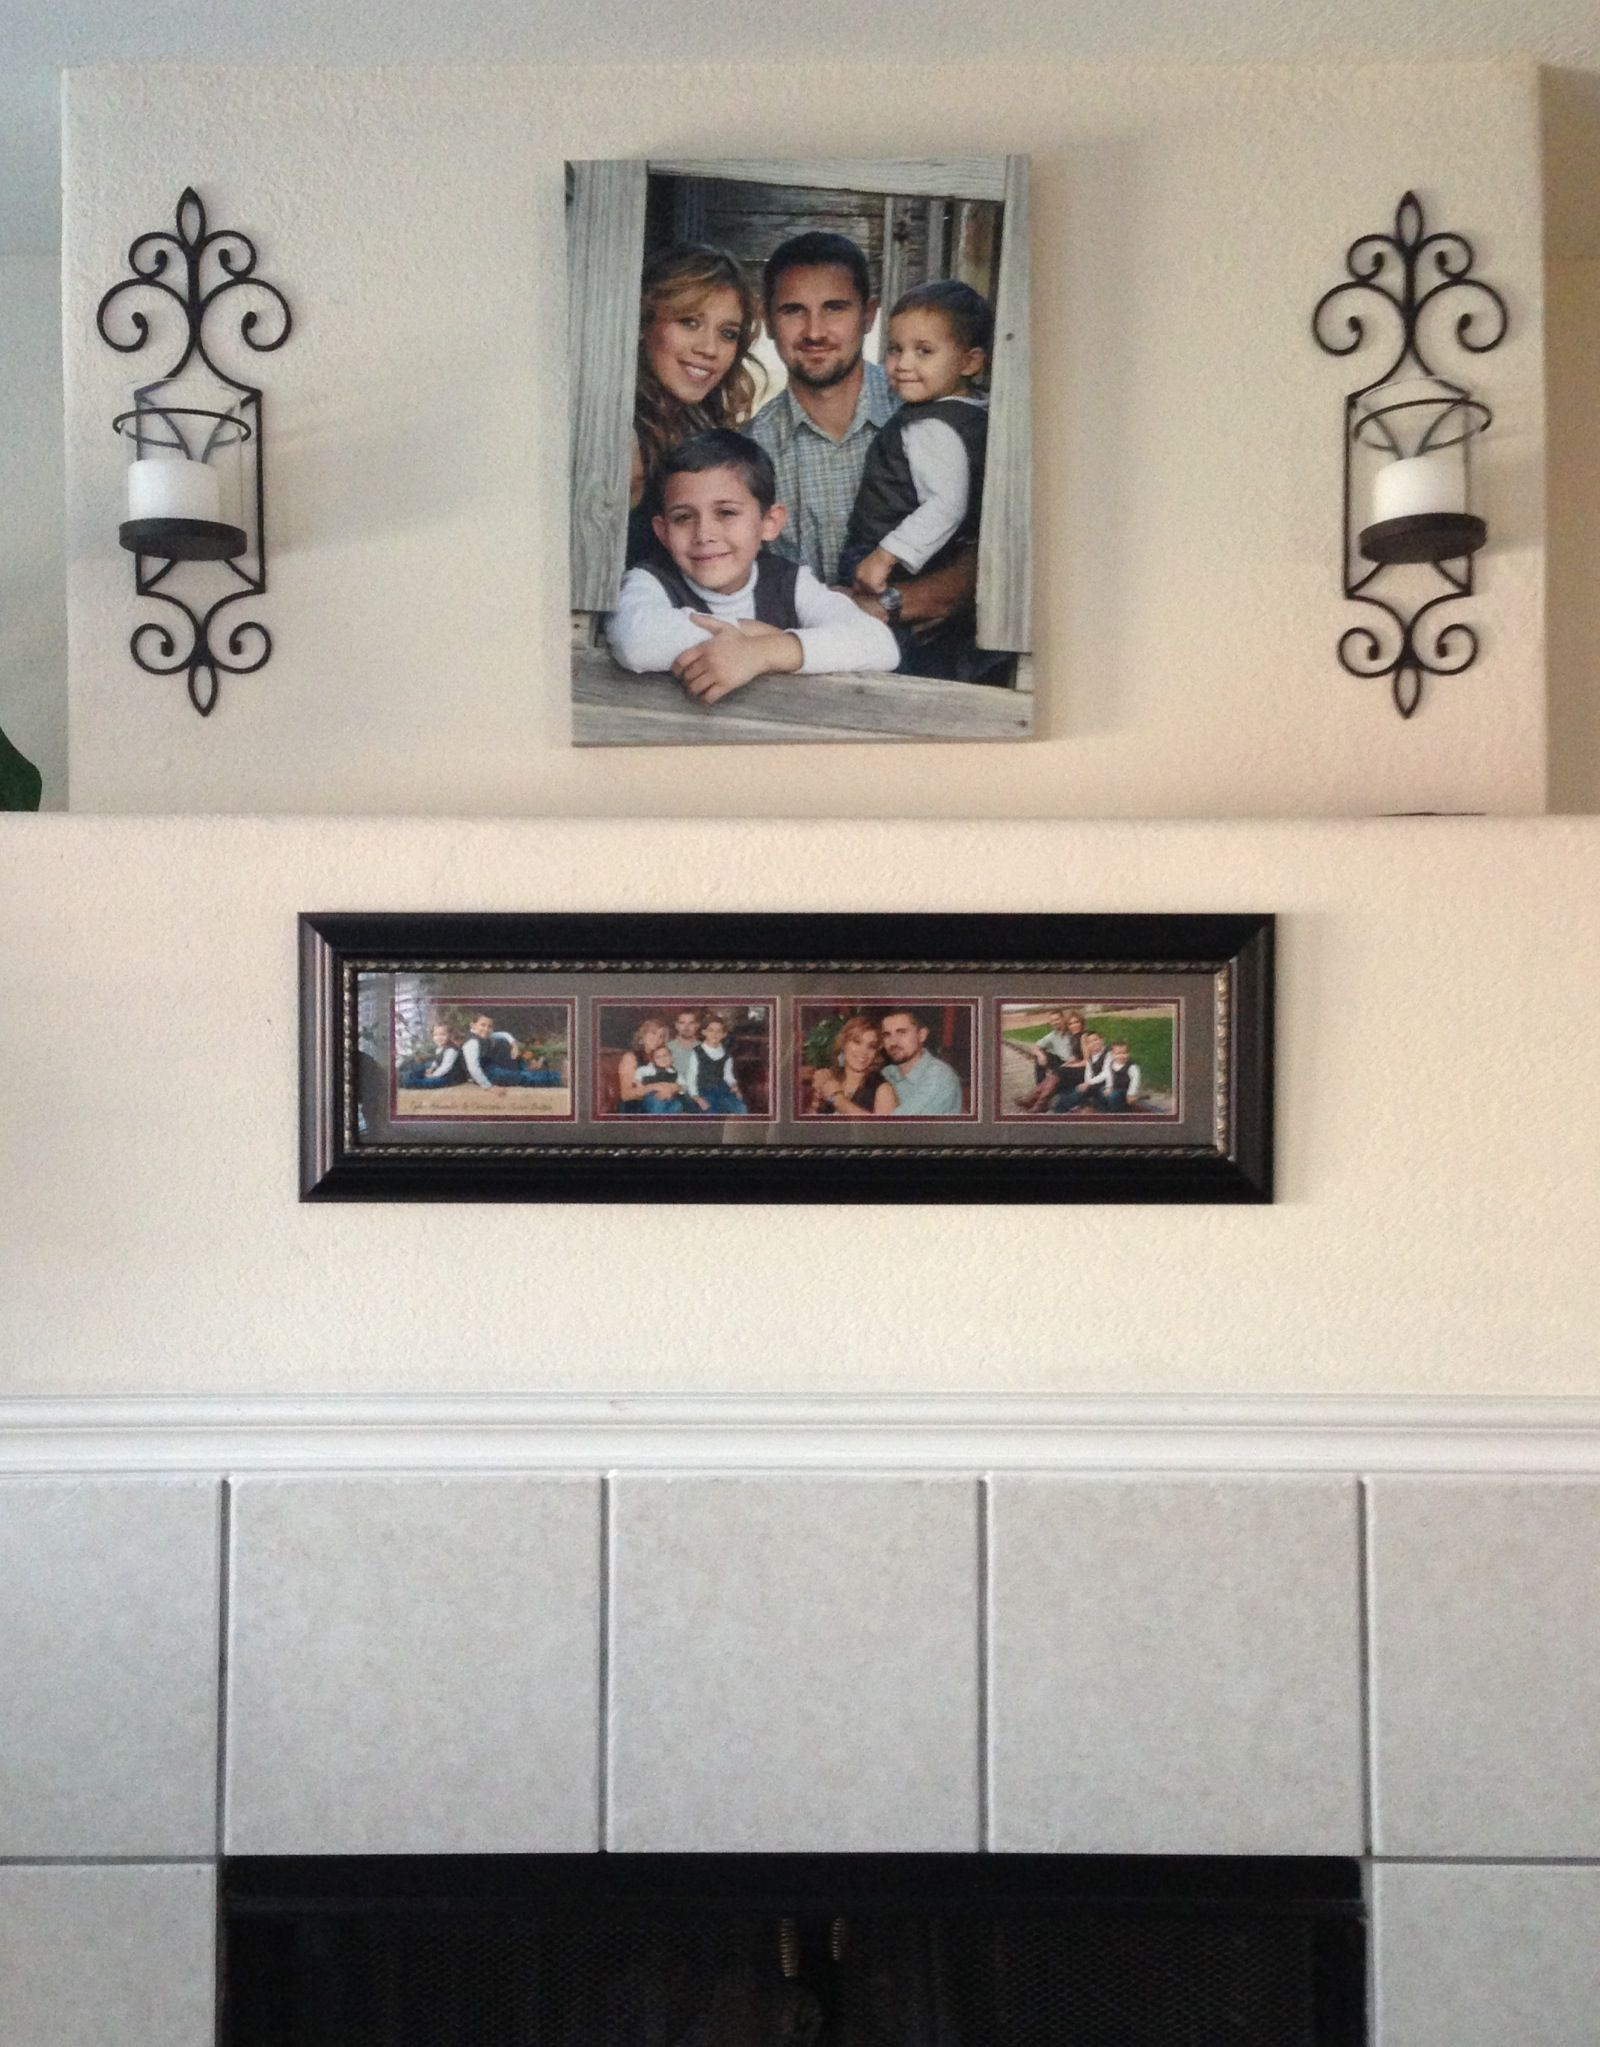 fireplace frames to put on wall above fireplace but with 4